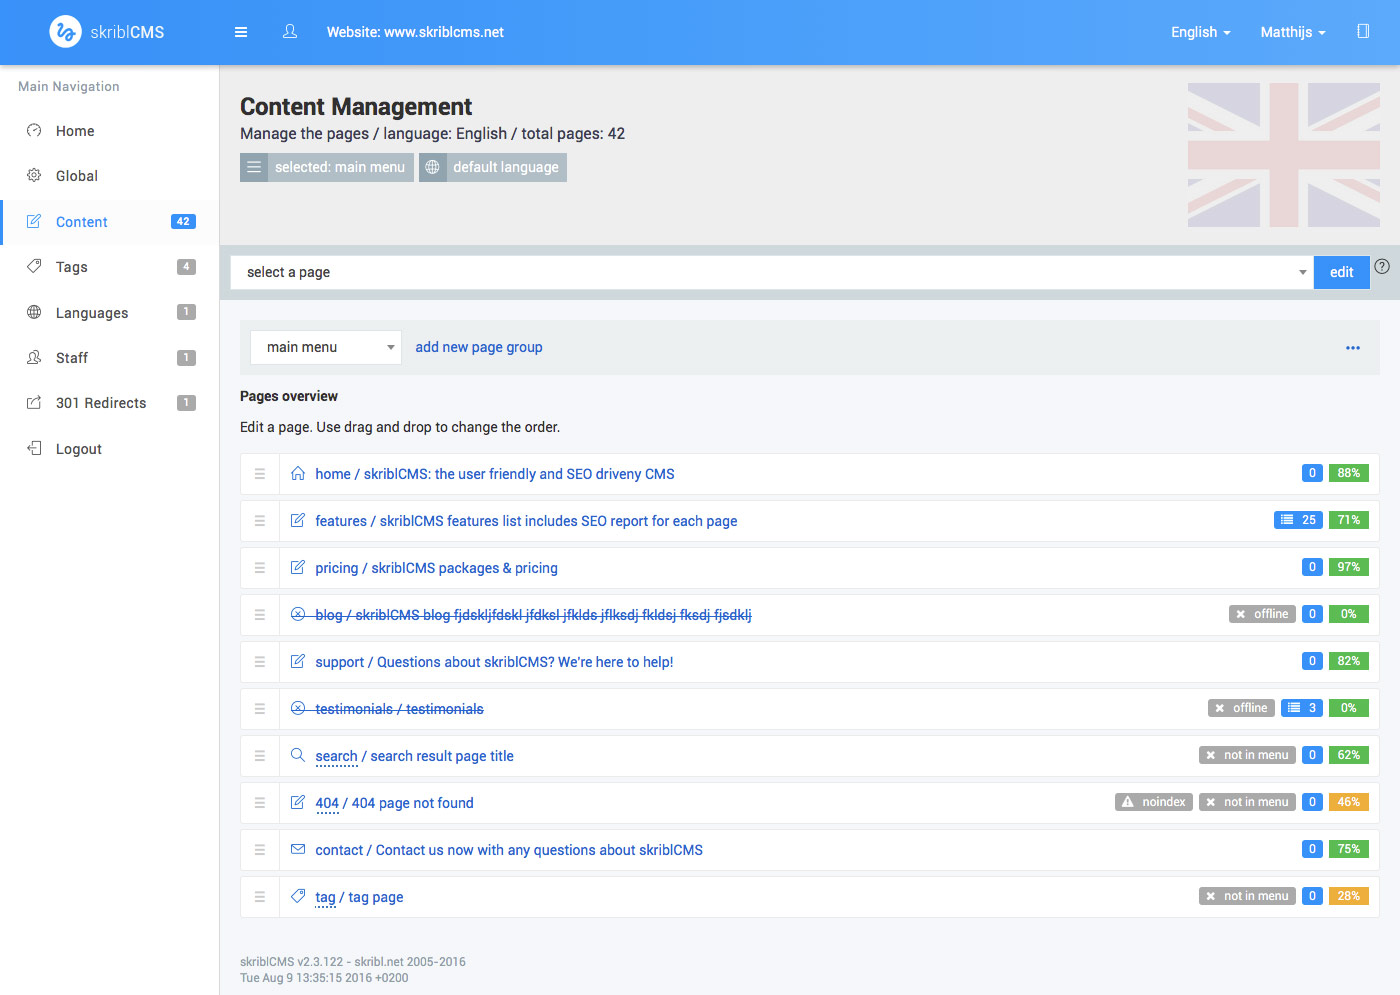 skriblCMS - content management - content presented as full page list using the menu structure with sub pages